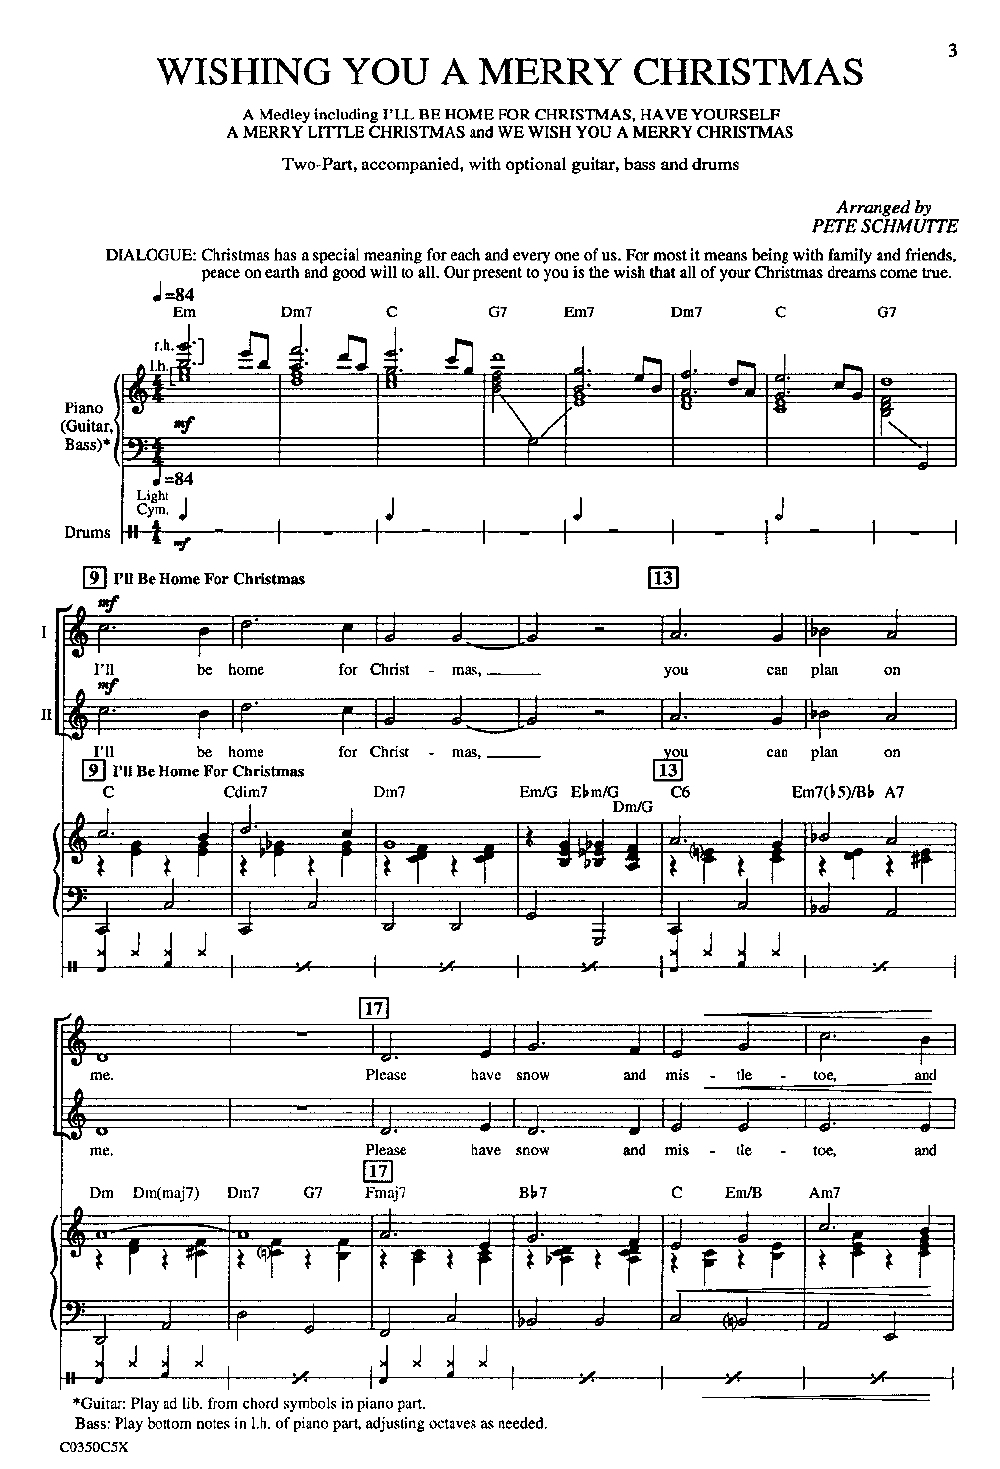 Wishing You a Merry Christmas (Two-Part ) by | J.W. Pepper Sheet Music